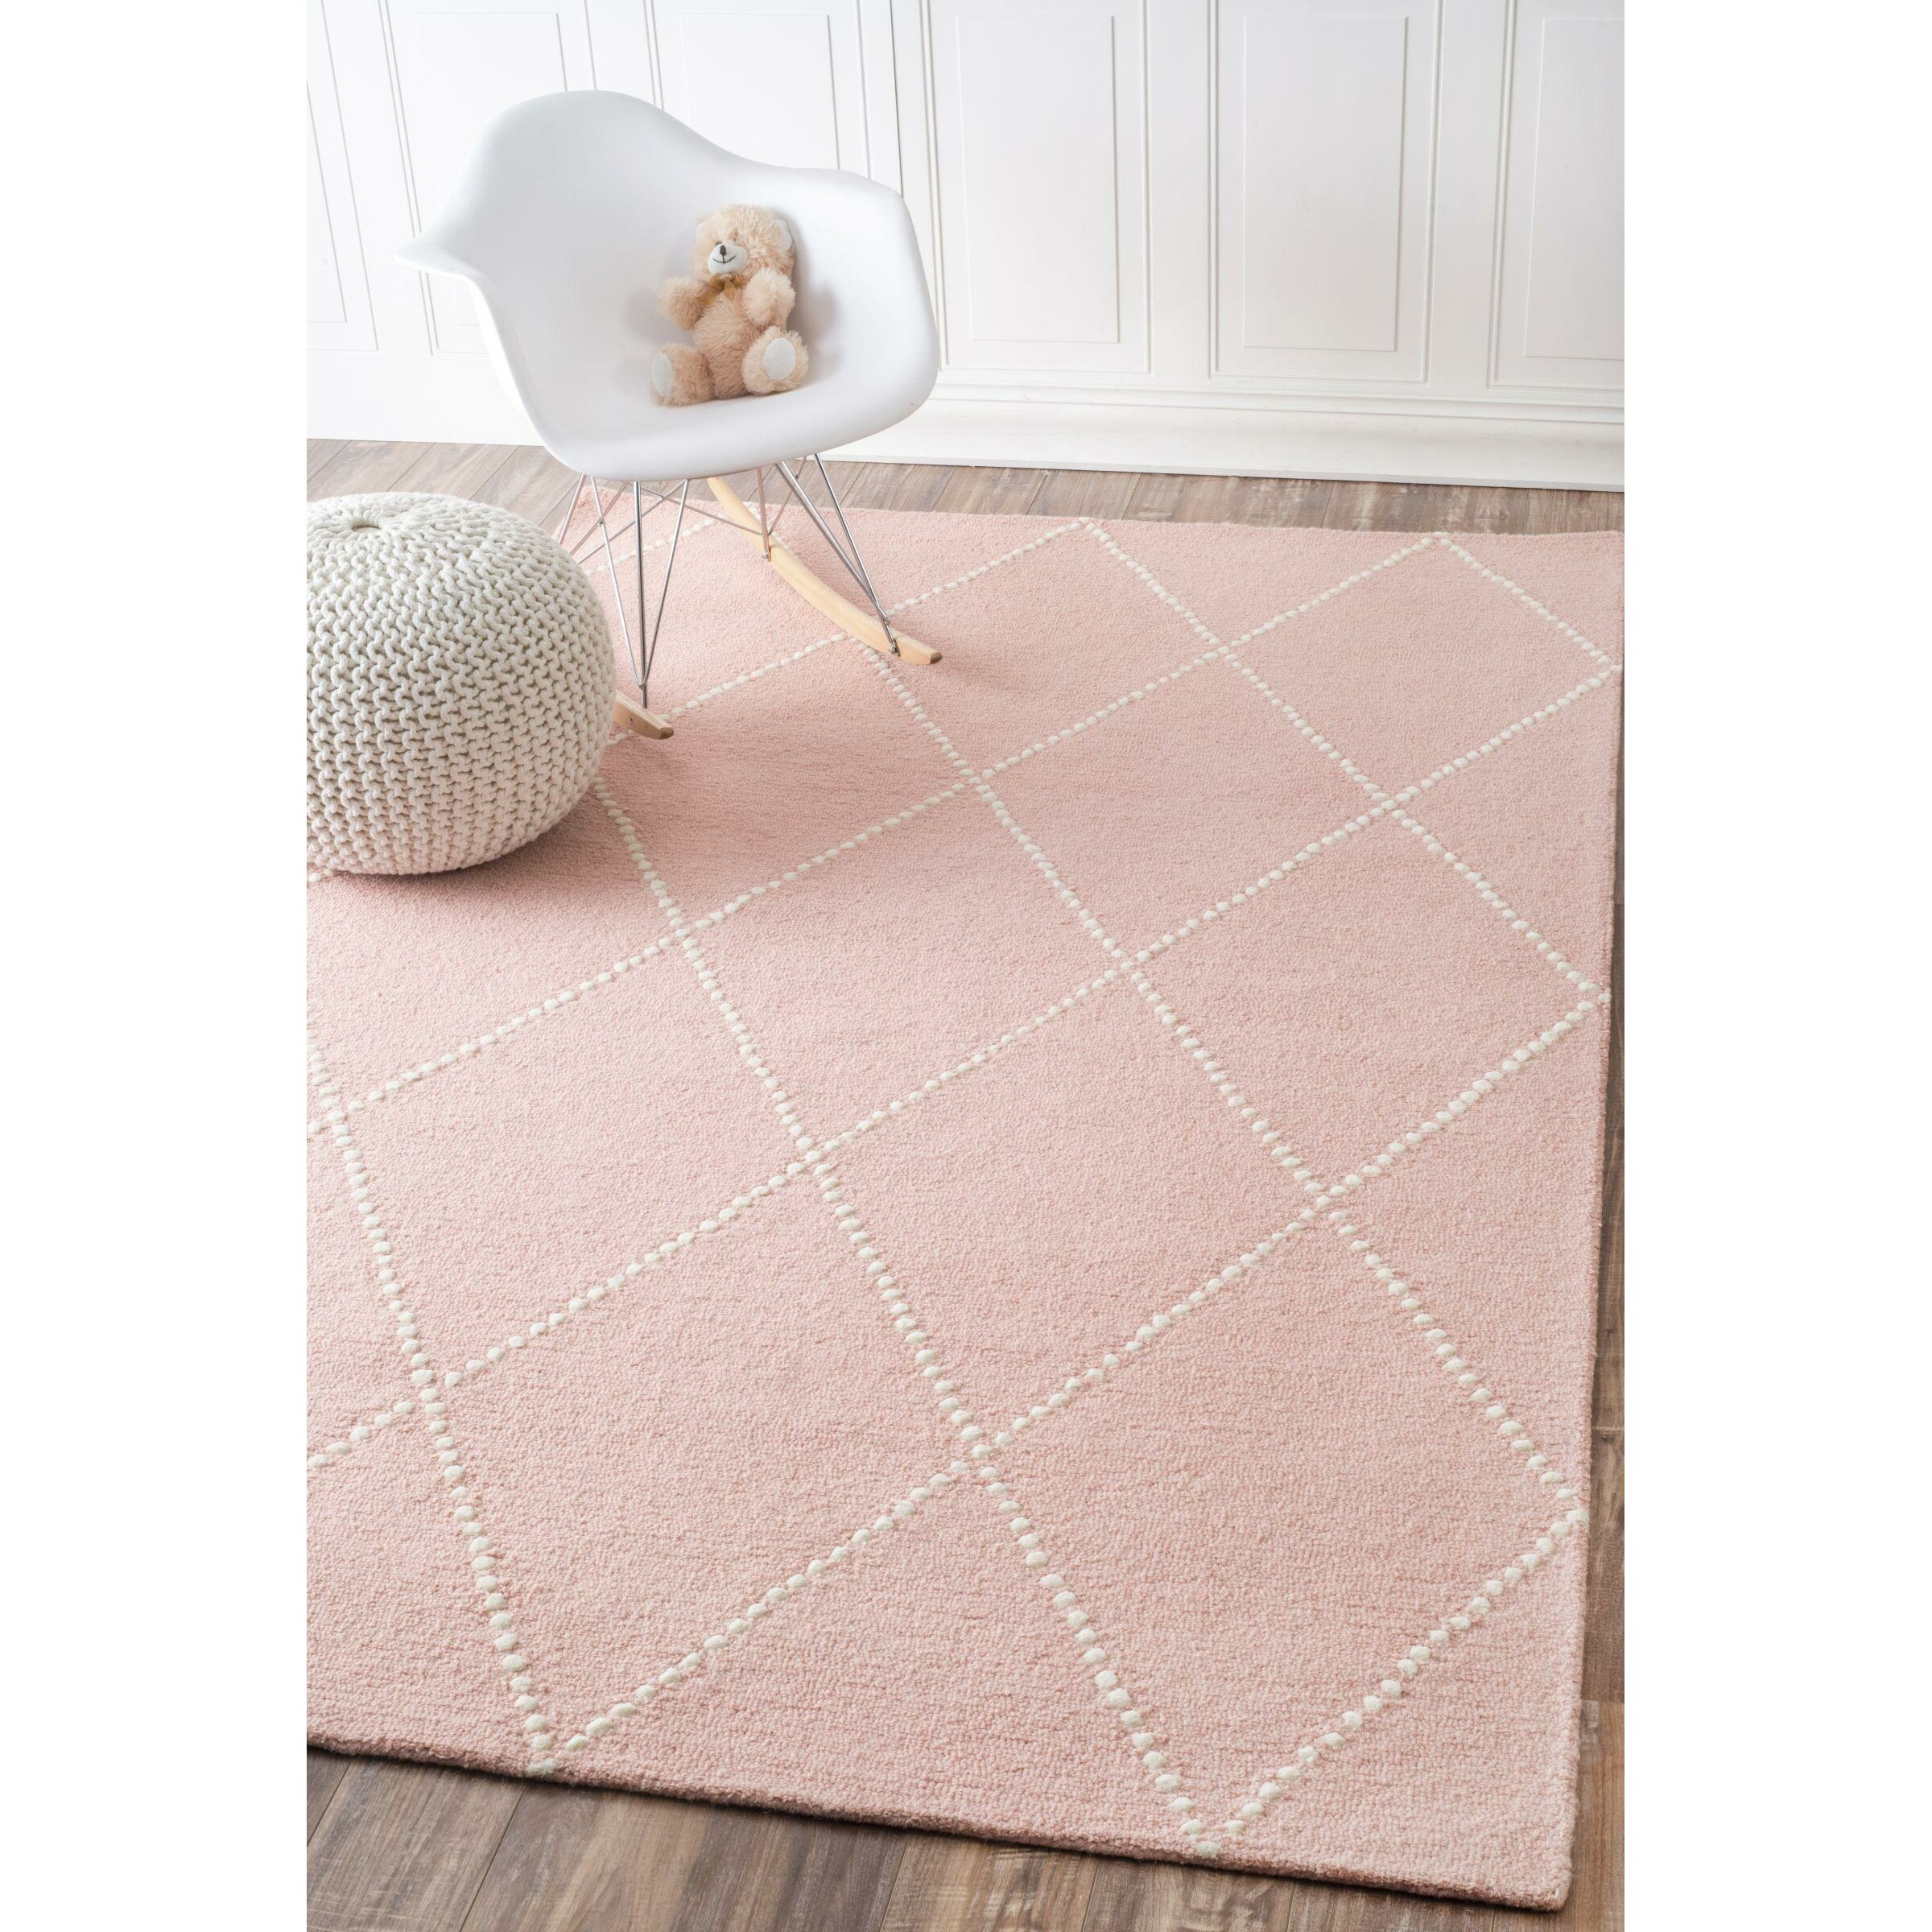 Baby Pink Bathroom Rugs: Viv + Rae Nat Diamond Hand-Tufted Baby Pink Area Rug